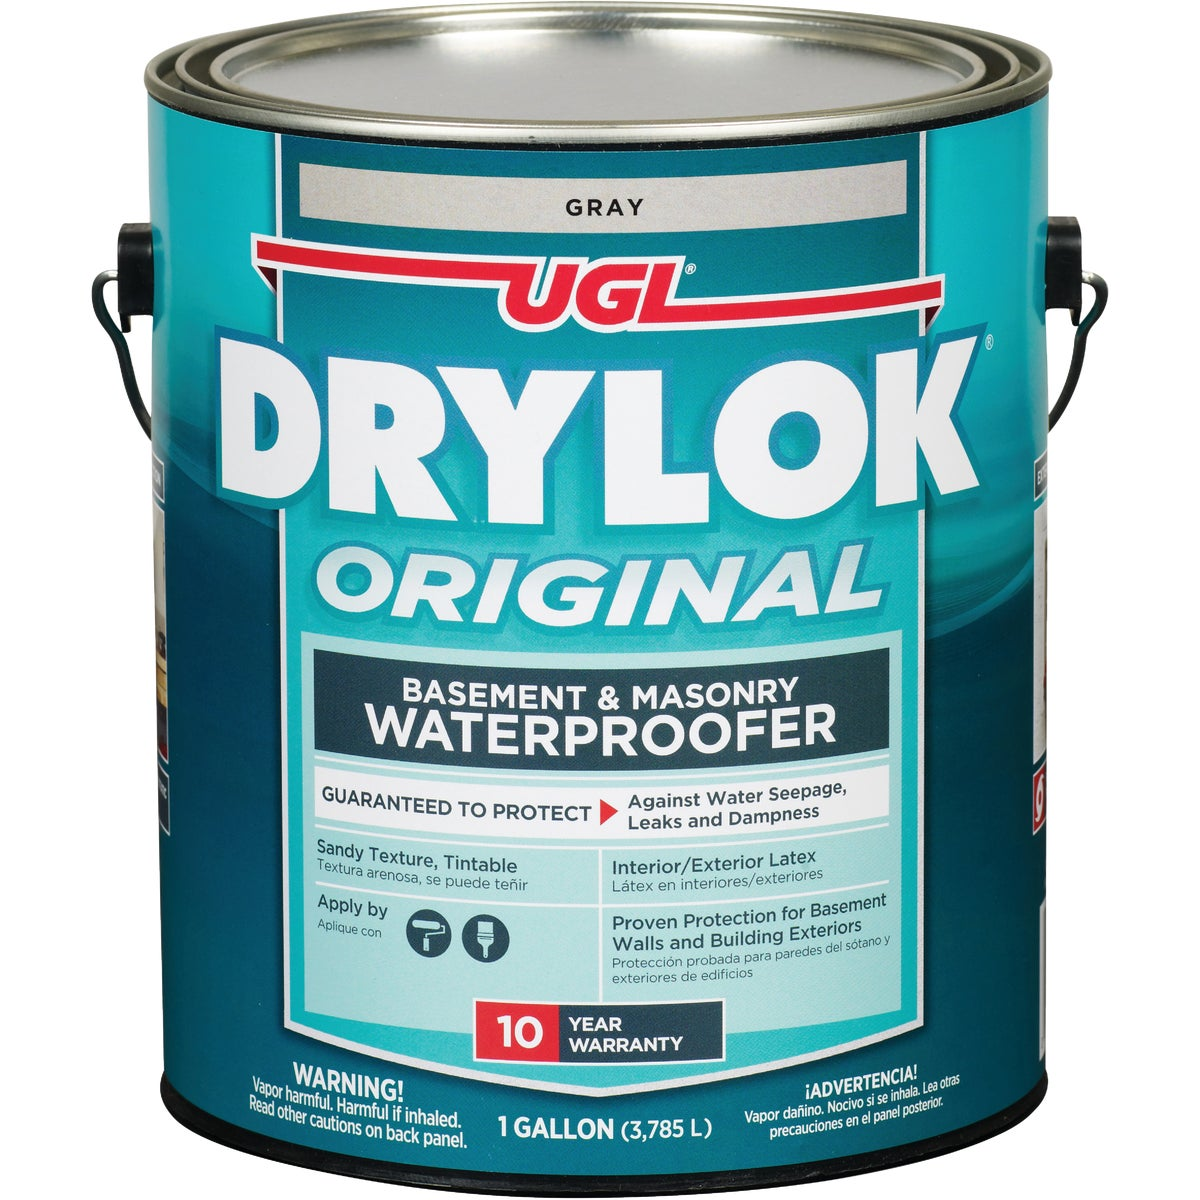 GRY MASONRY WATERPROOFER